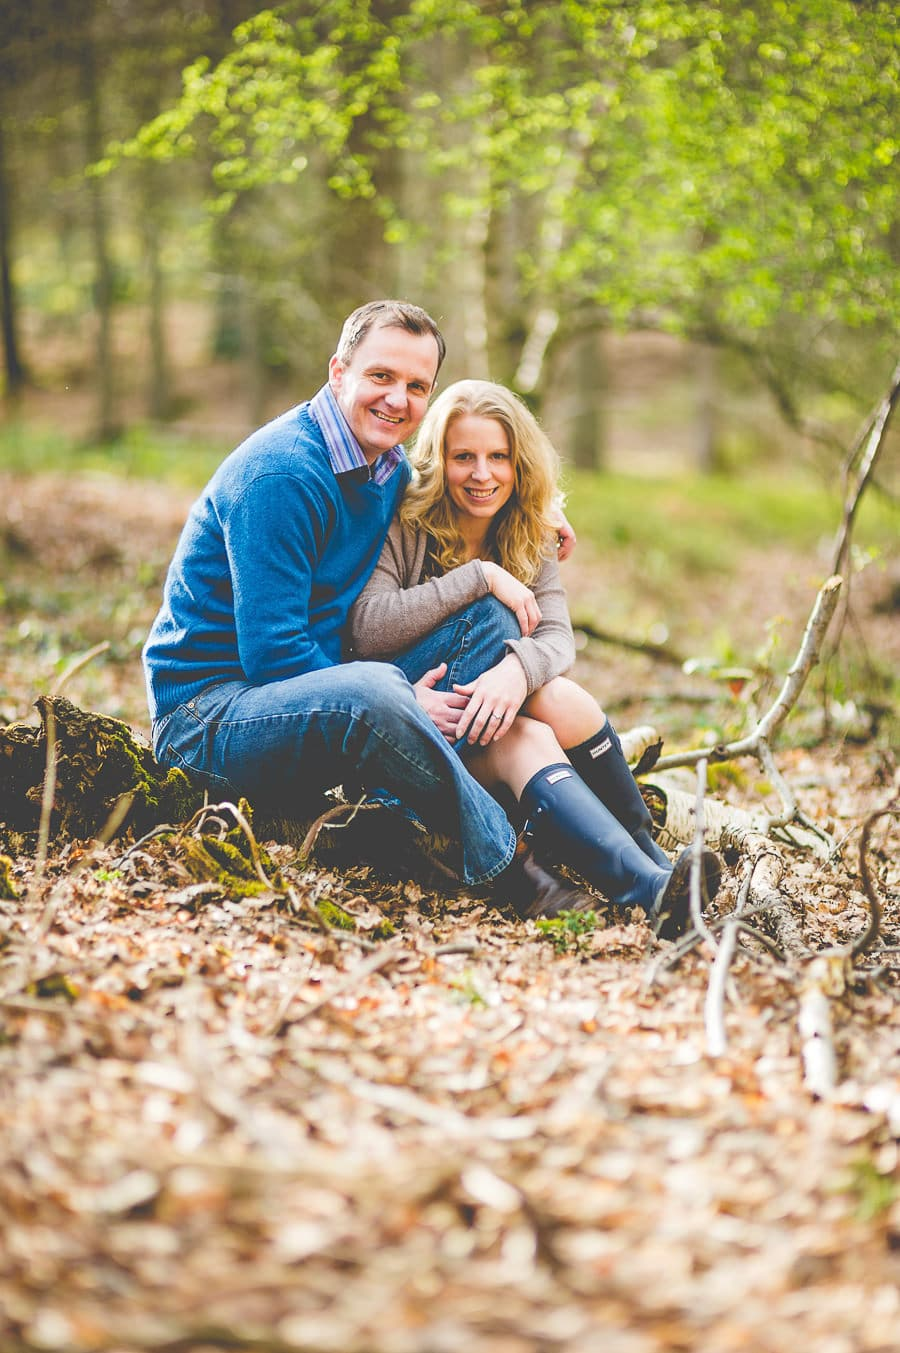 JLP 11901 - Melissa & Dean's Pre Wedding Photography in Worcestershire, West Midlands